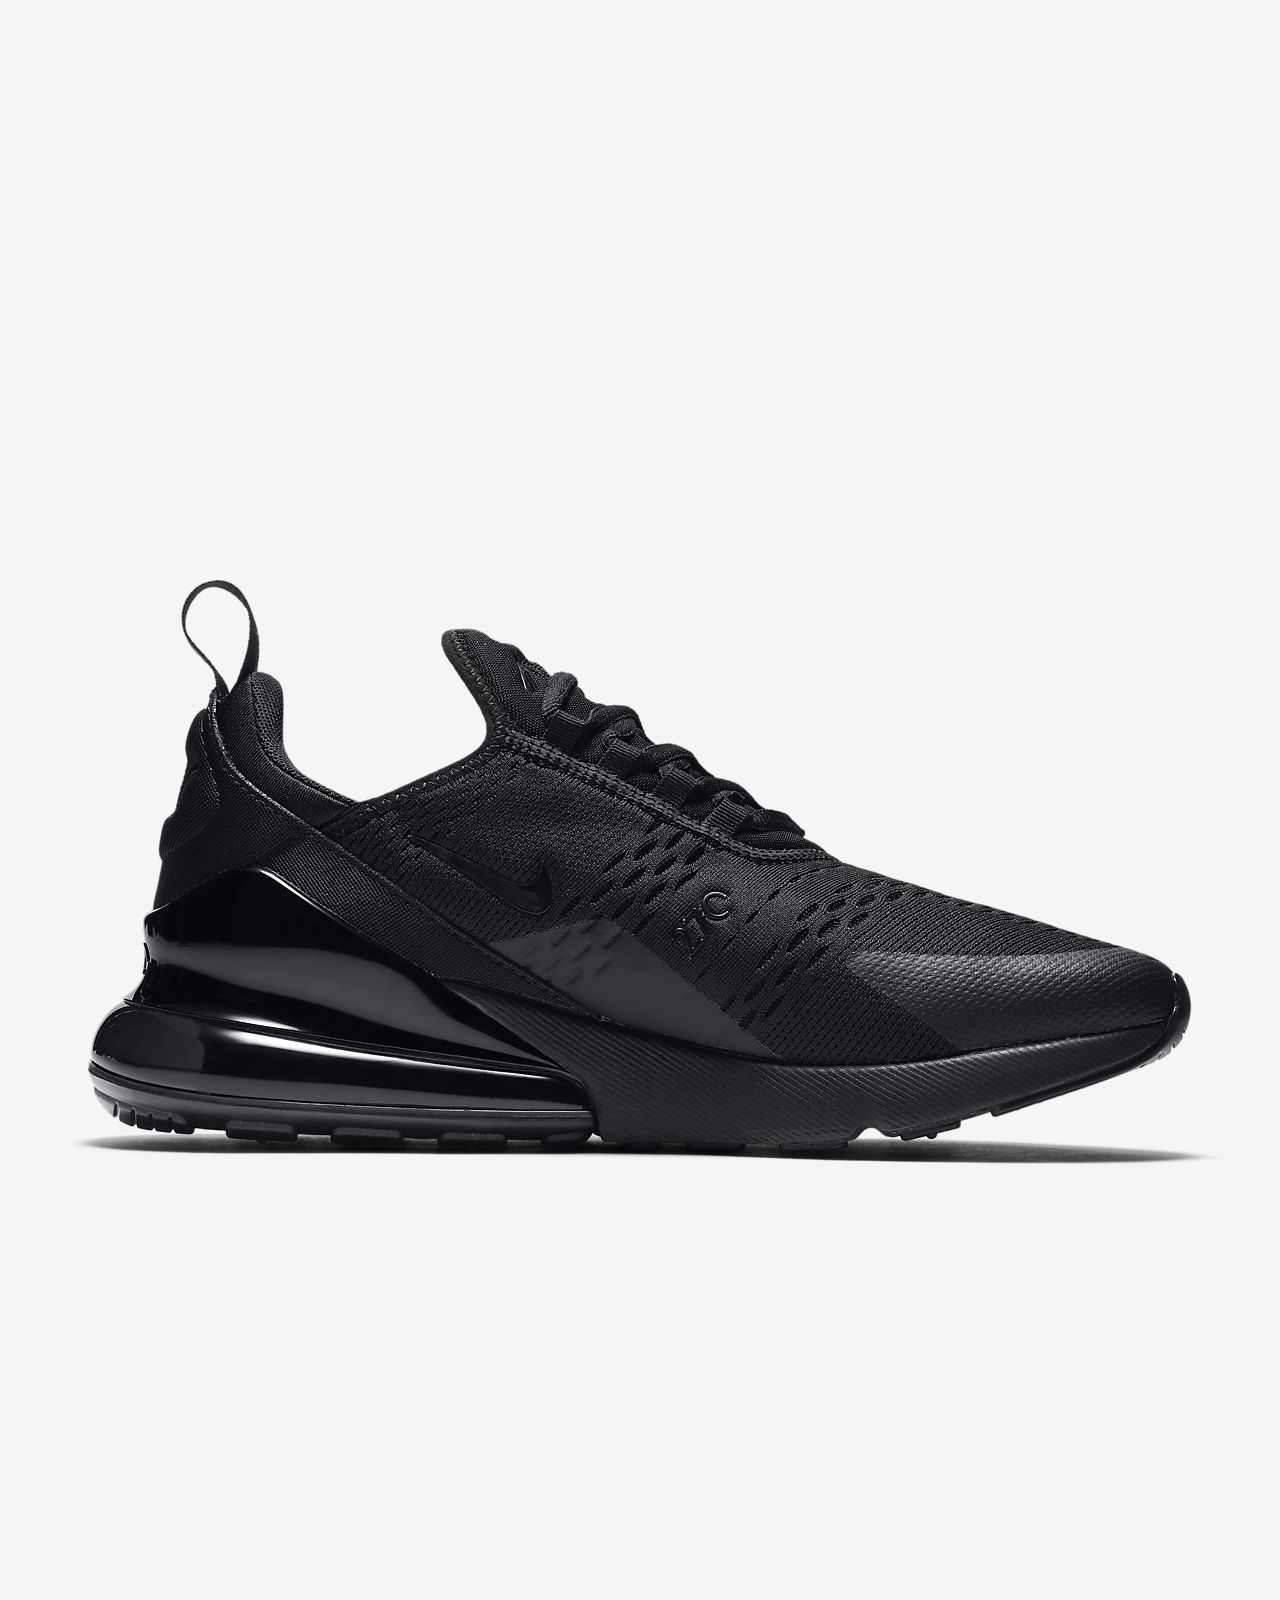 lowest price 37f8b 3c203 ... Nike Air Max 270 Men s Shoe